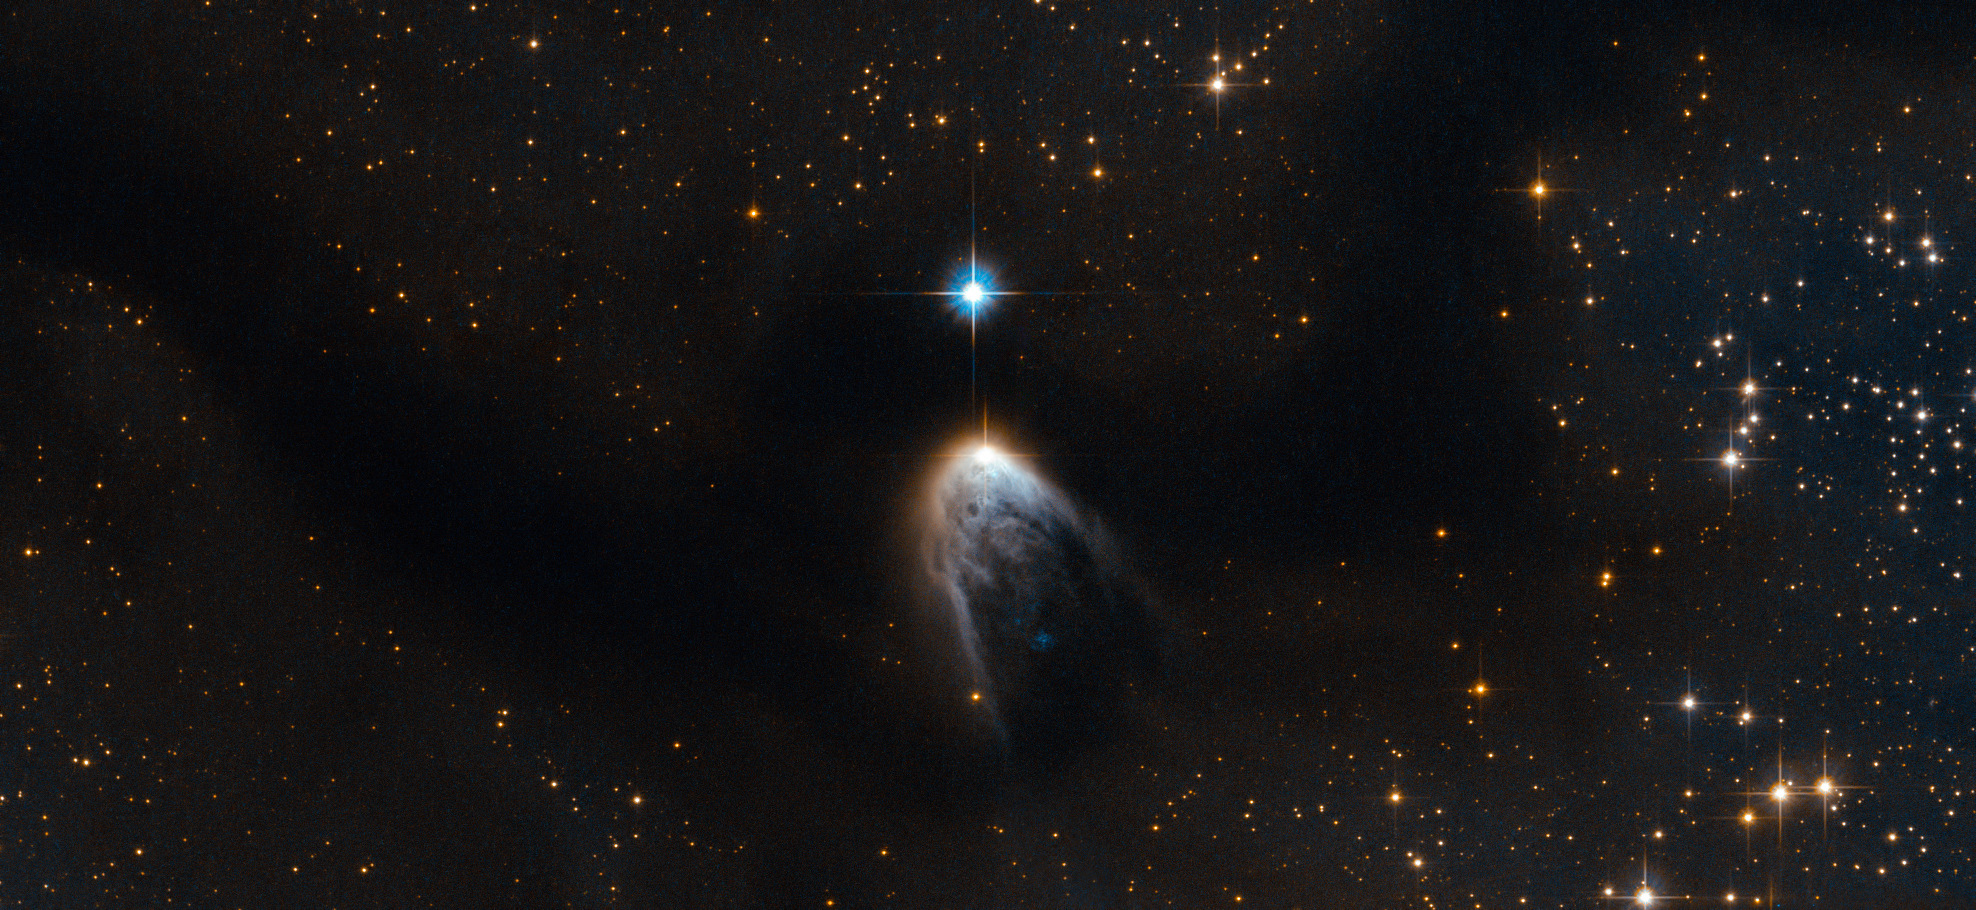 IRAS14568-6304, a young stellar object. Click picture for a larger version. Image credit: ESA/Hubble & NASA. Acknowledgements: R. Sahai (Jet Propulsion Laboratory), S. Meunier.